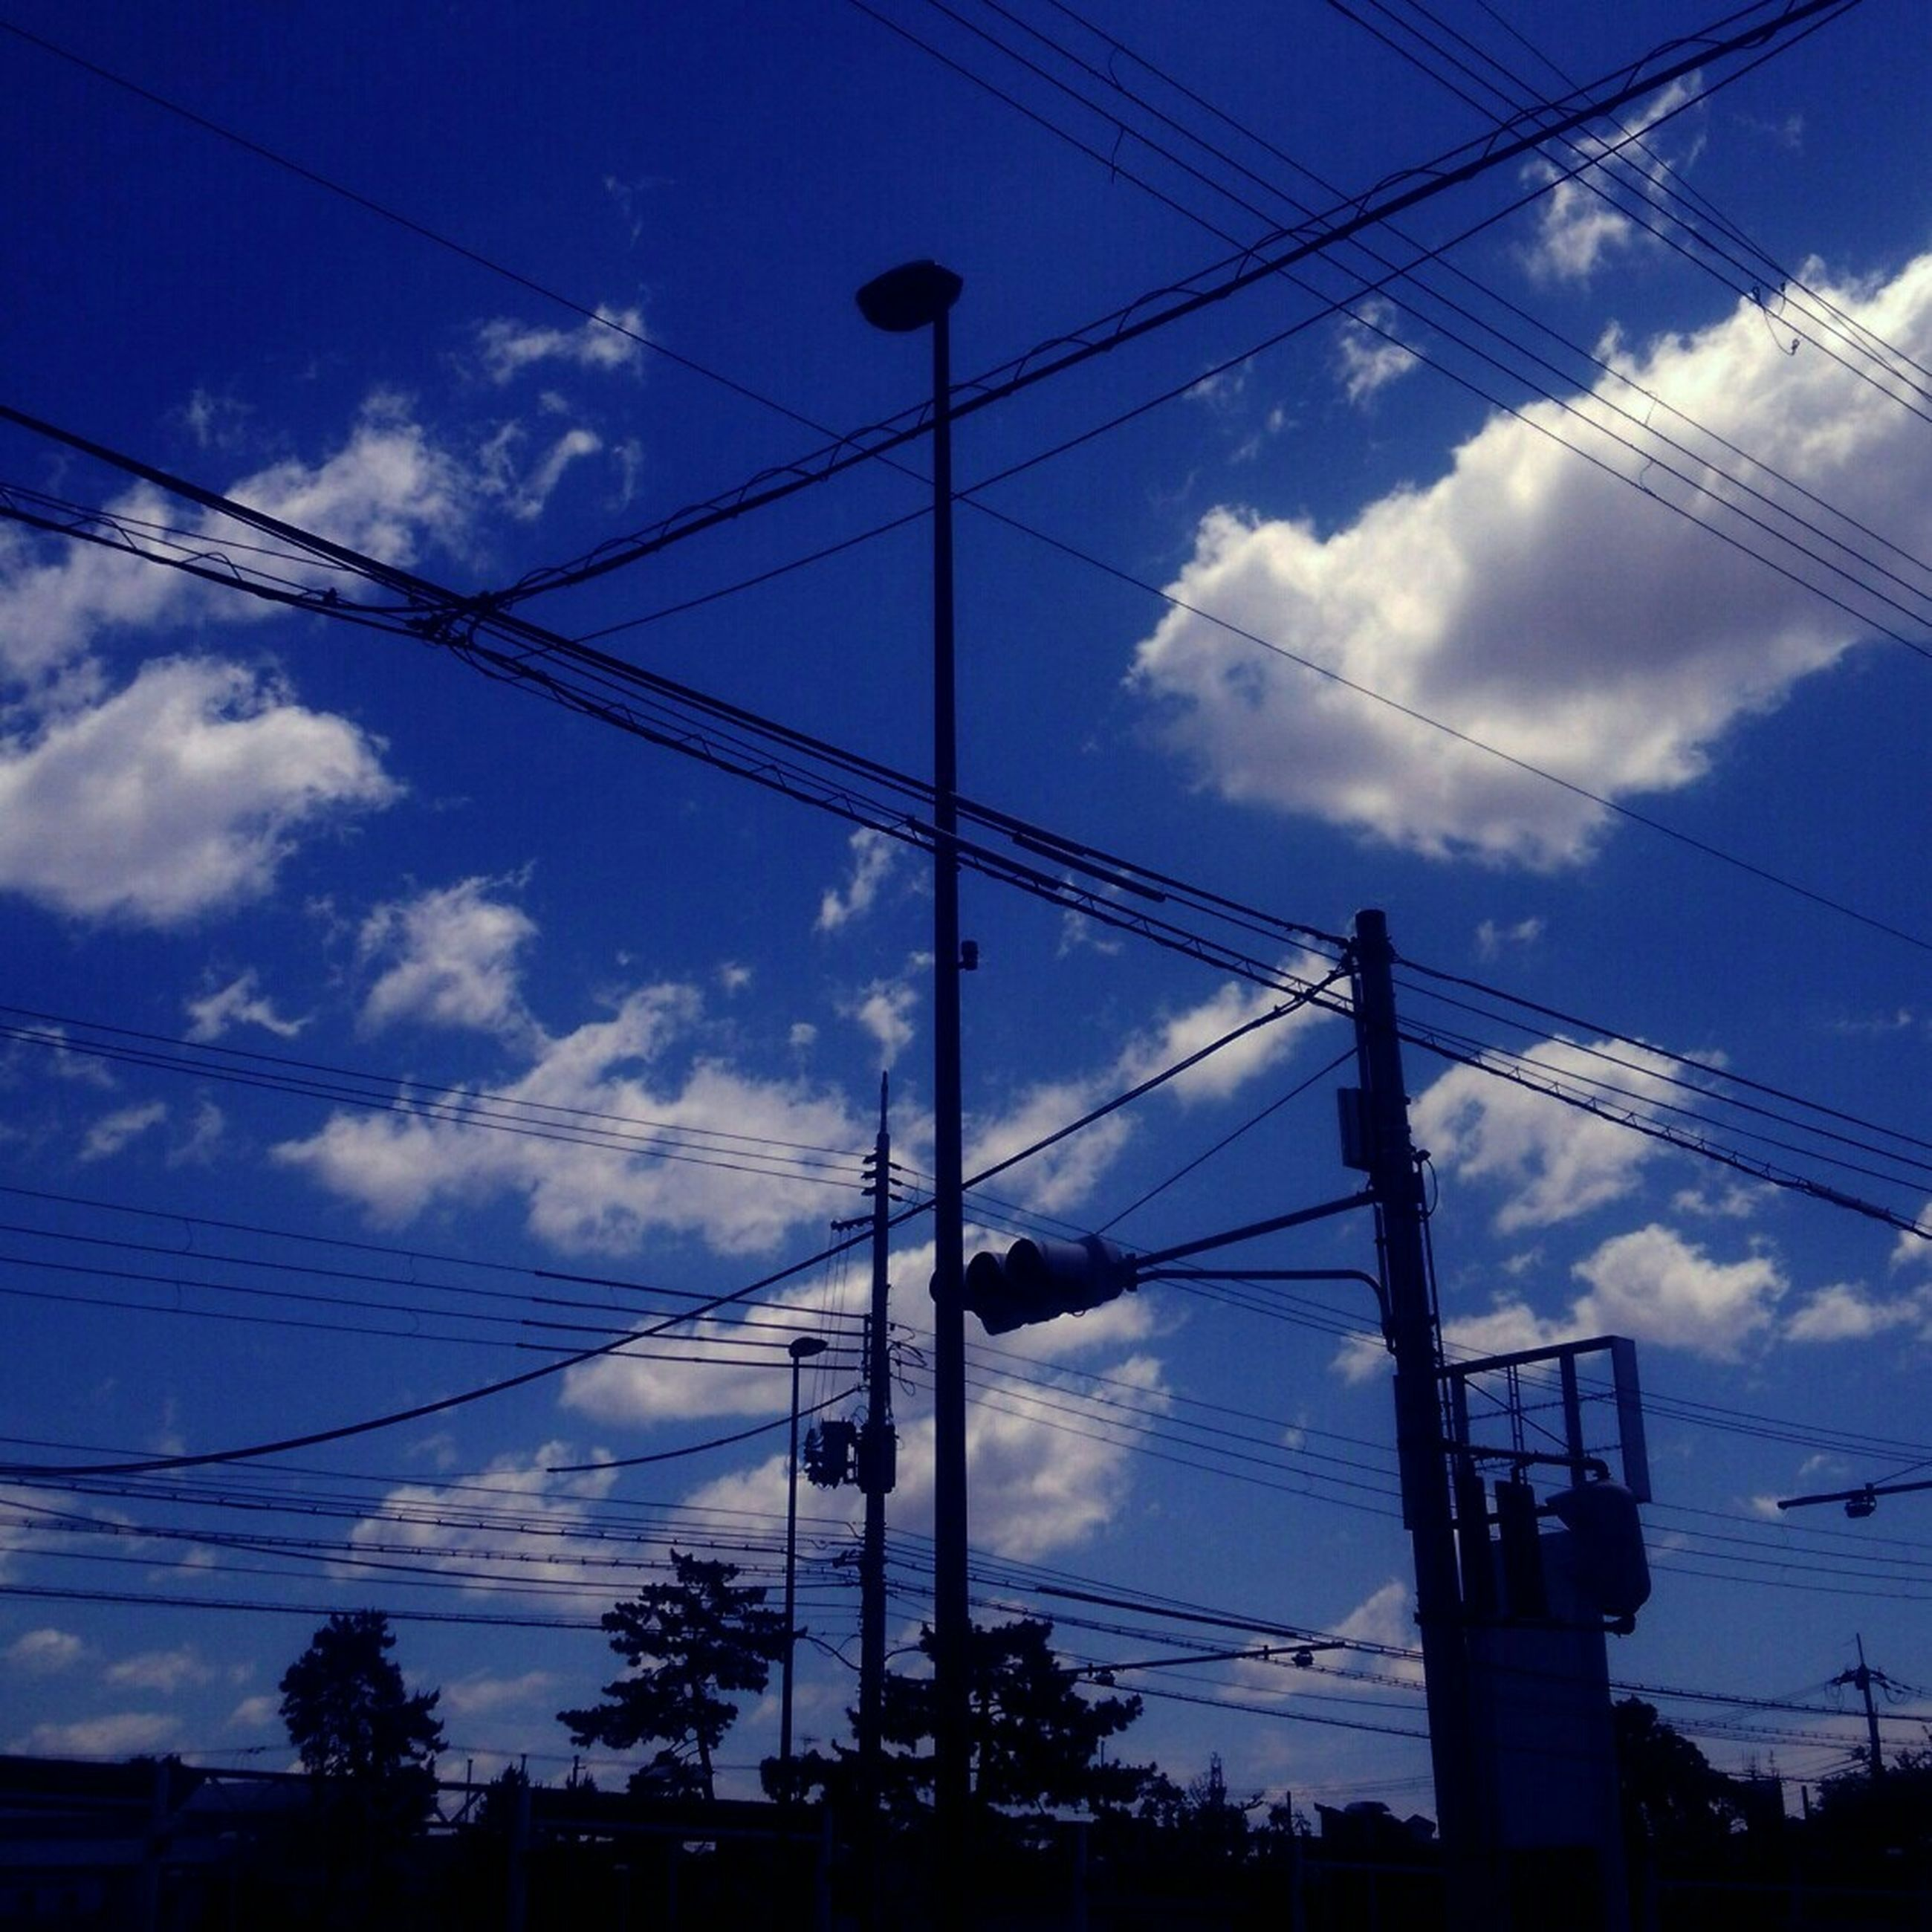 power line, electricity pylon, power supply, low angle view, sky, electricity, cable, connection, cloud - sky, blue, fuel and power generation, power cable, technology, cloud, cloudy, silhouette, built structure, architecture, no people, outdoors